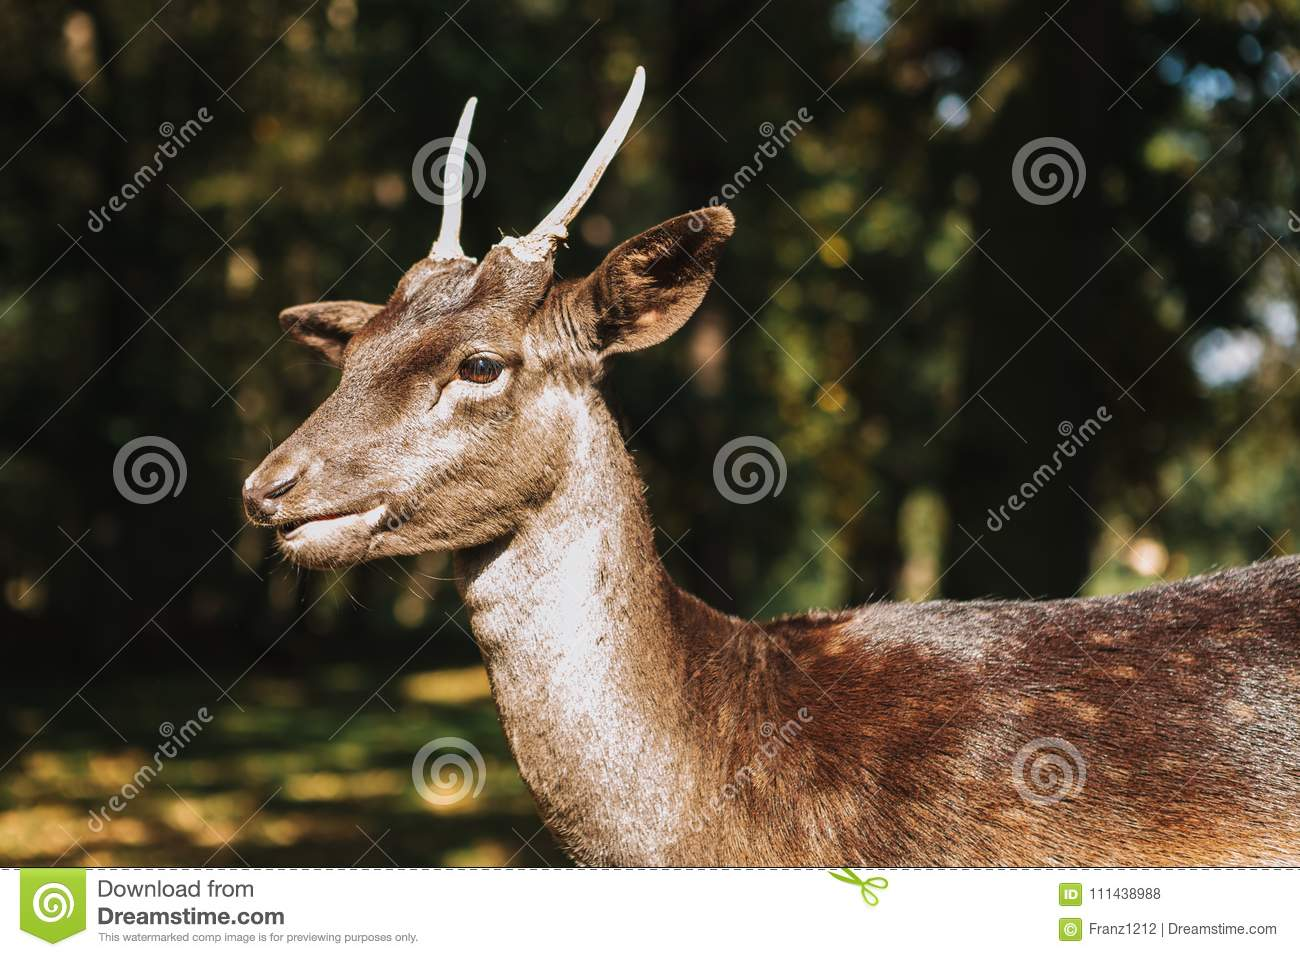 A Young Deer In Its Natural Habitat Stock Photo